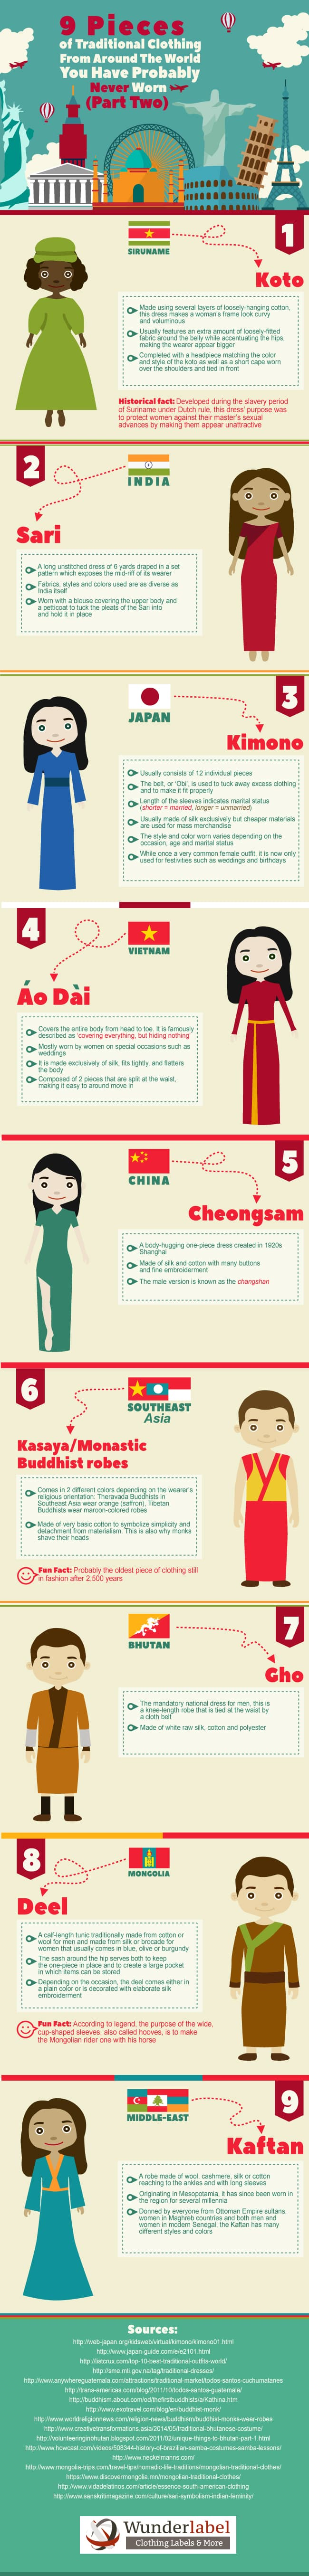 9 pieces of clothing from around the world